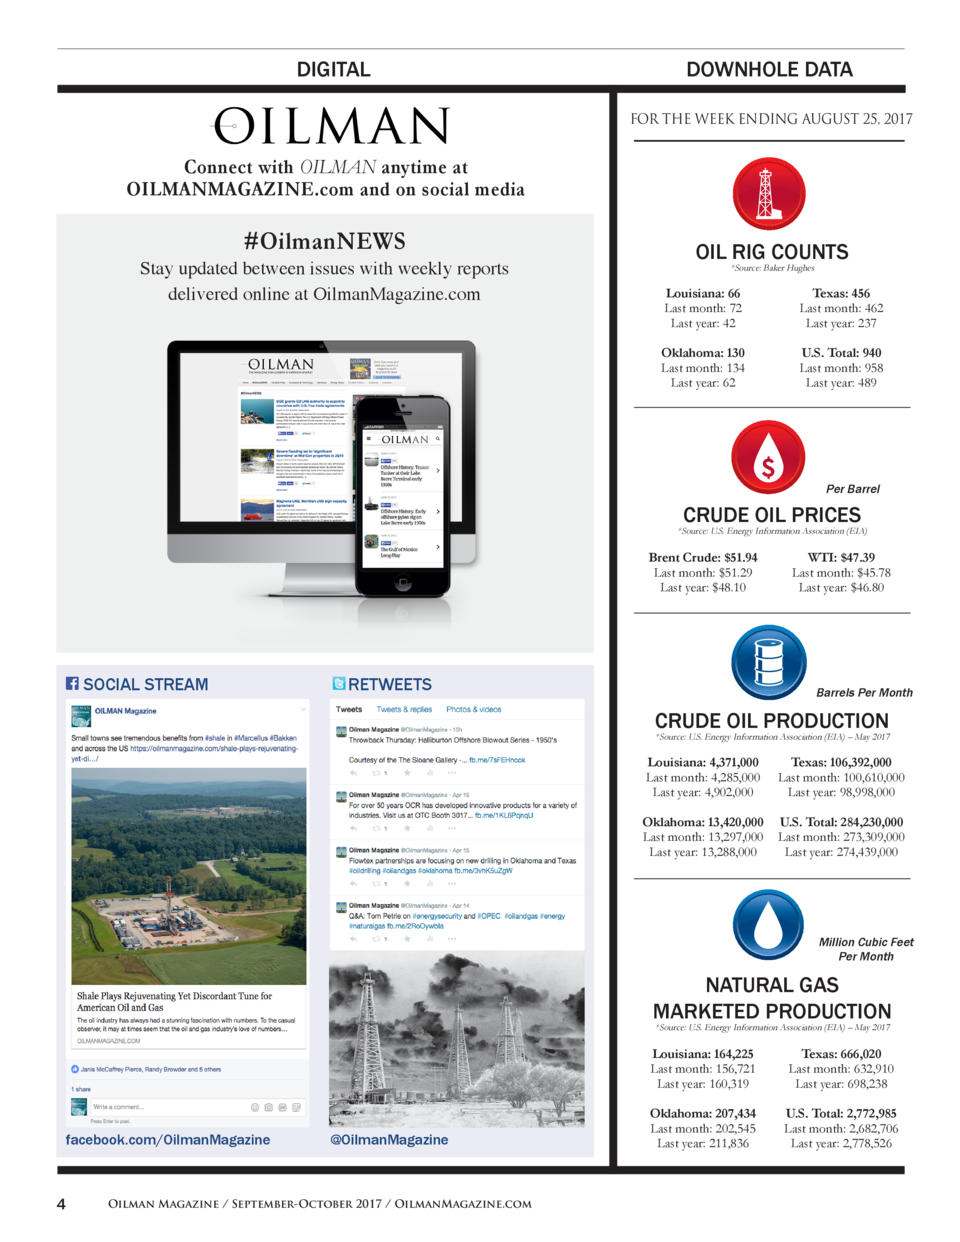 DIGITAL  DOWNHOLE DATA FOR THE WEEK ENDING AUGUST 25, 2017  Connect with OILMAN anytime at OILMANMAGAZINE.com and on socia...